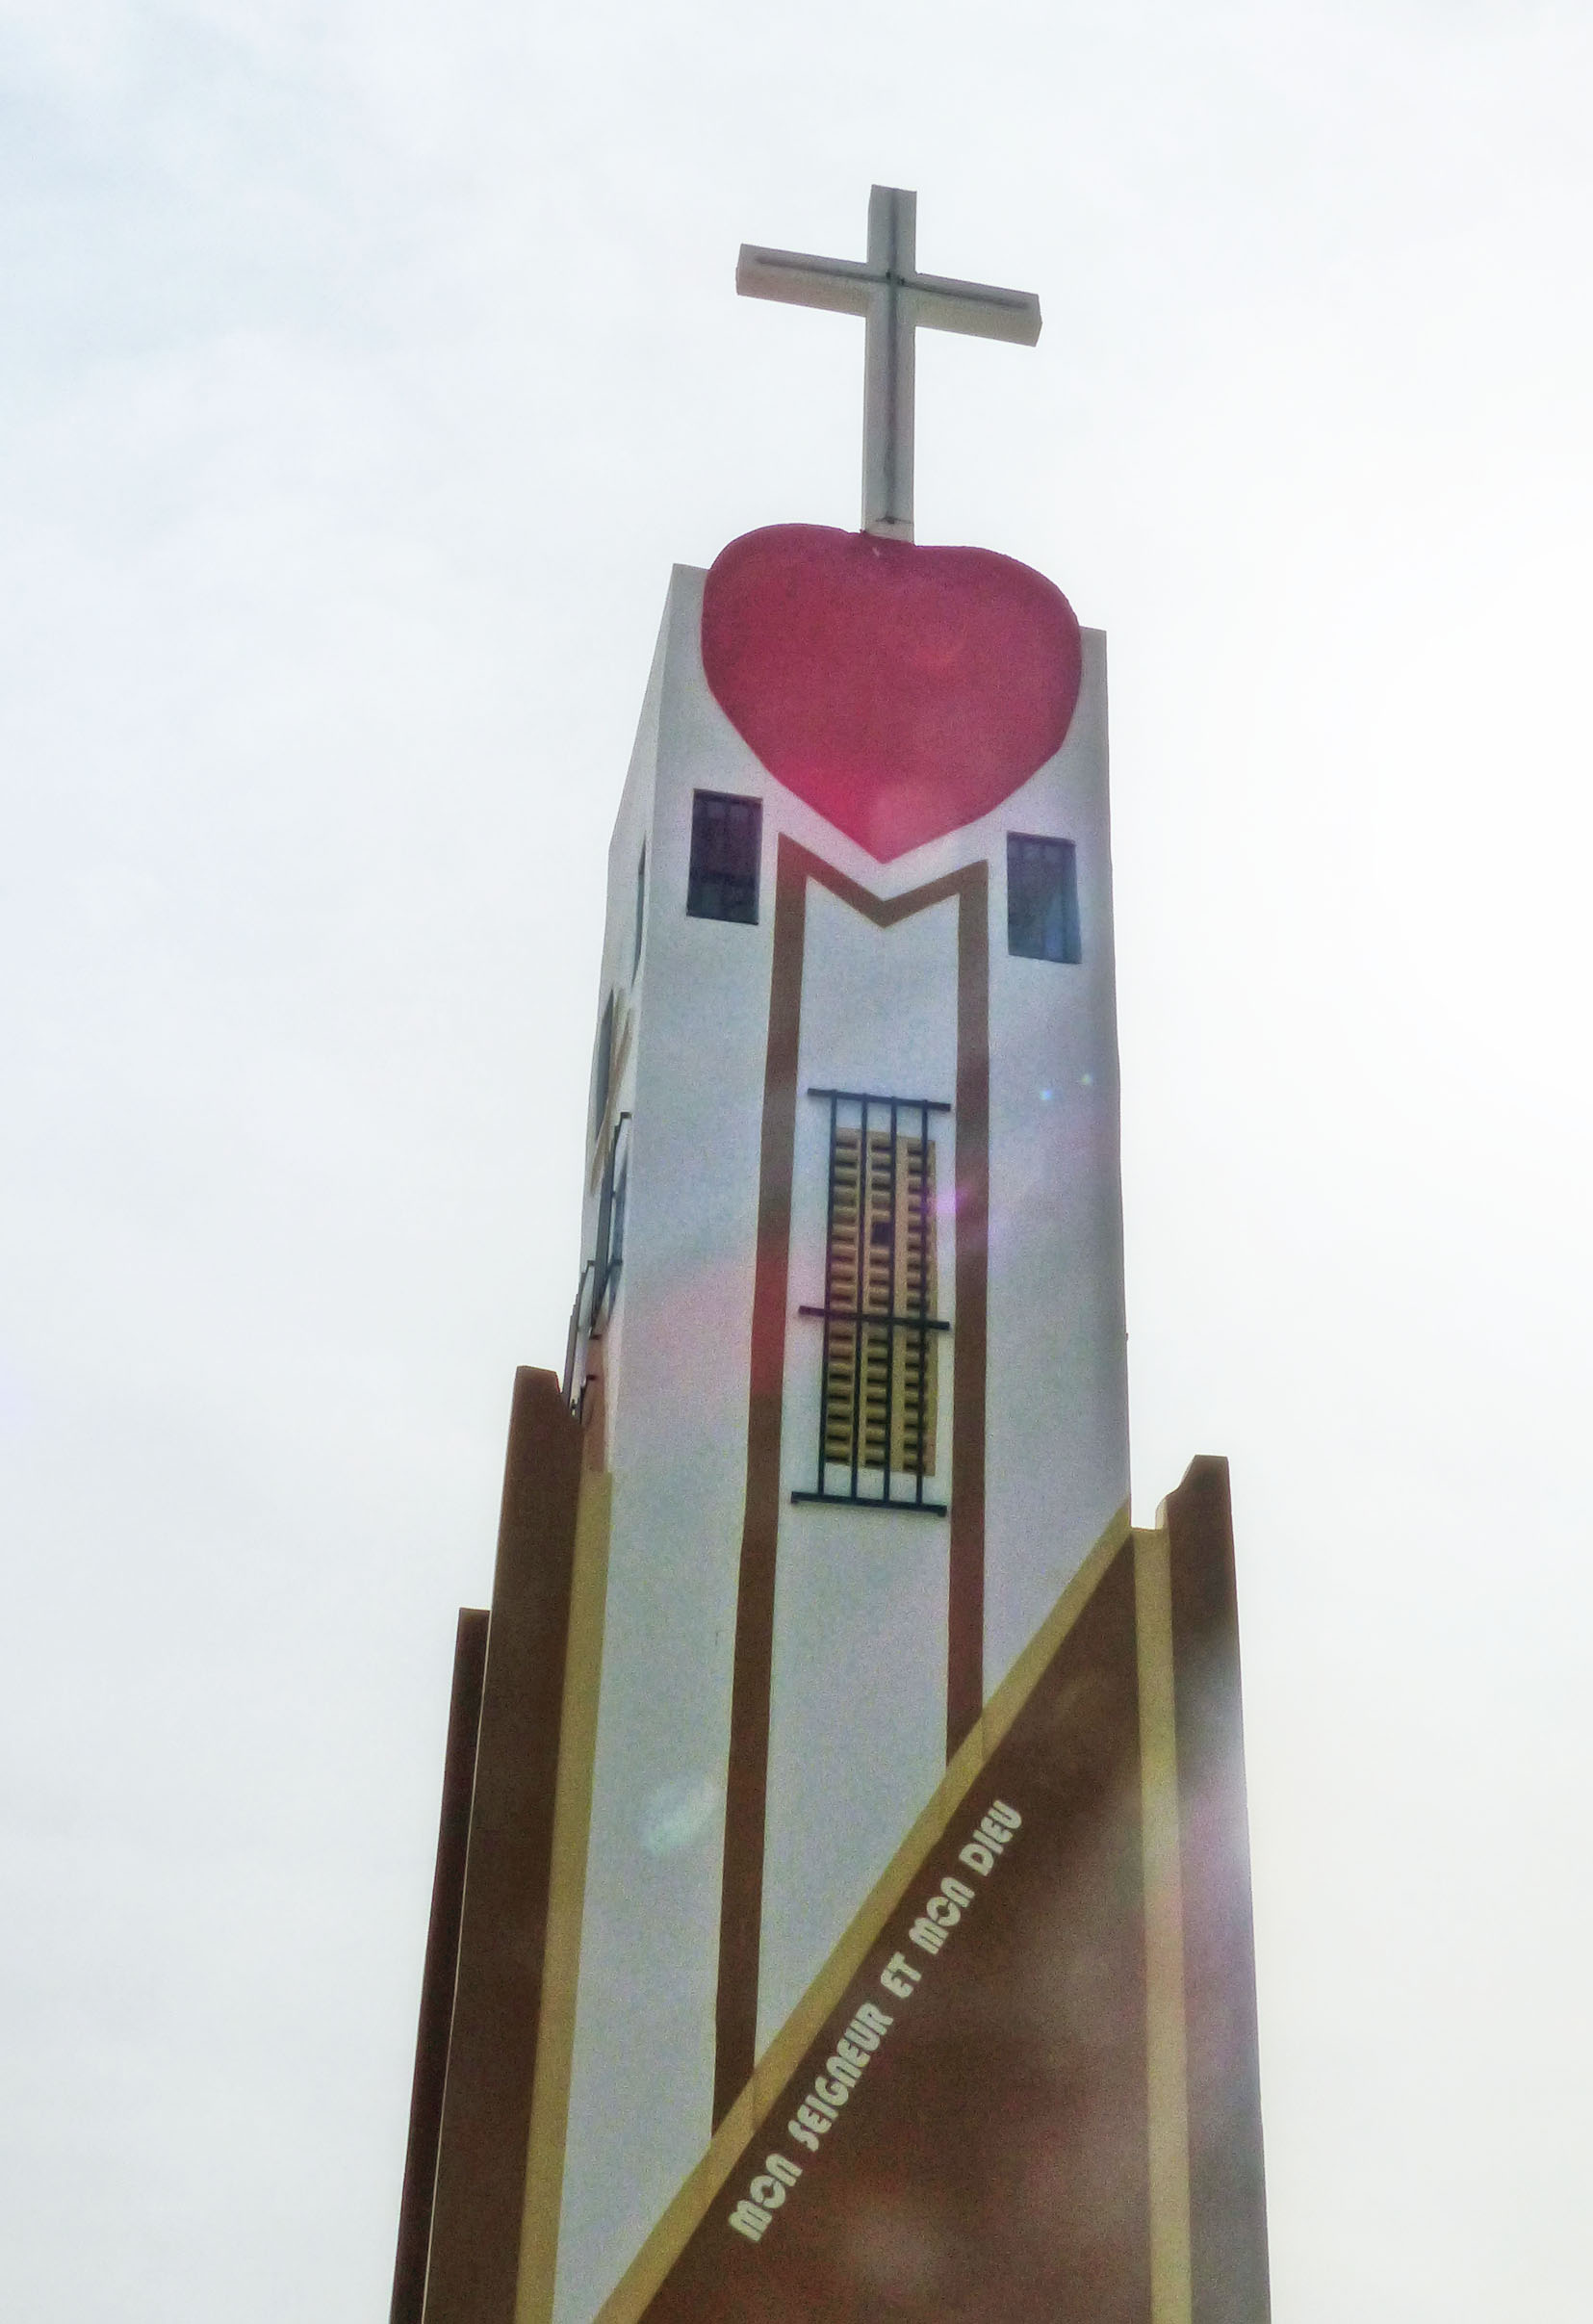 Tall white tower topped with red heart and cross